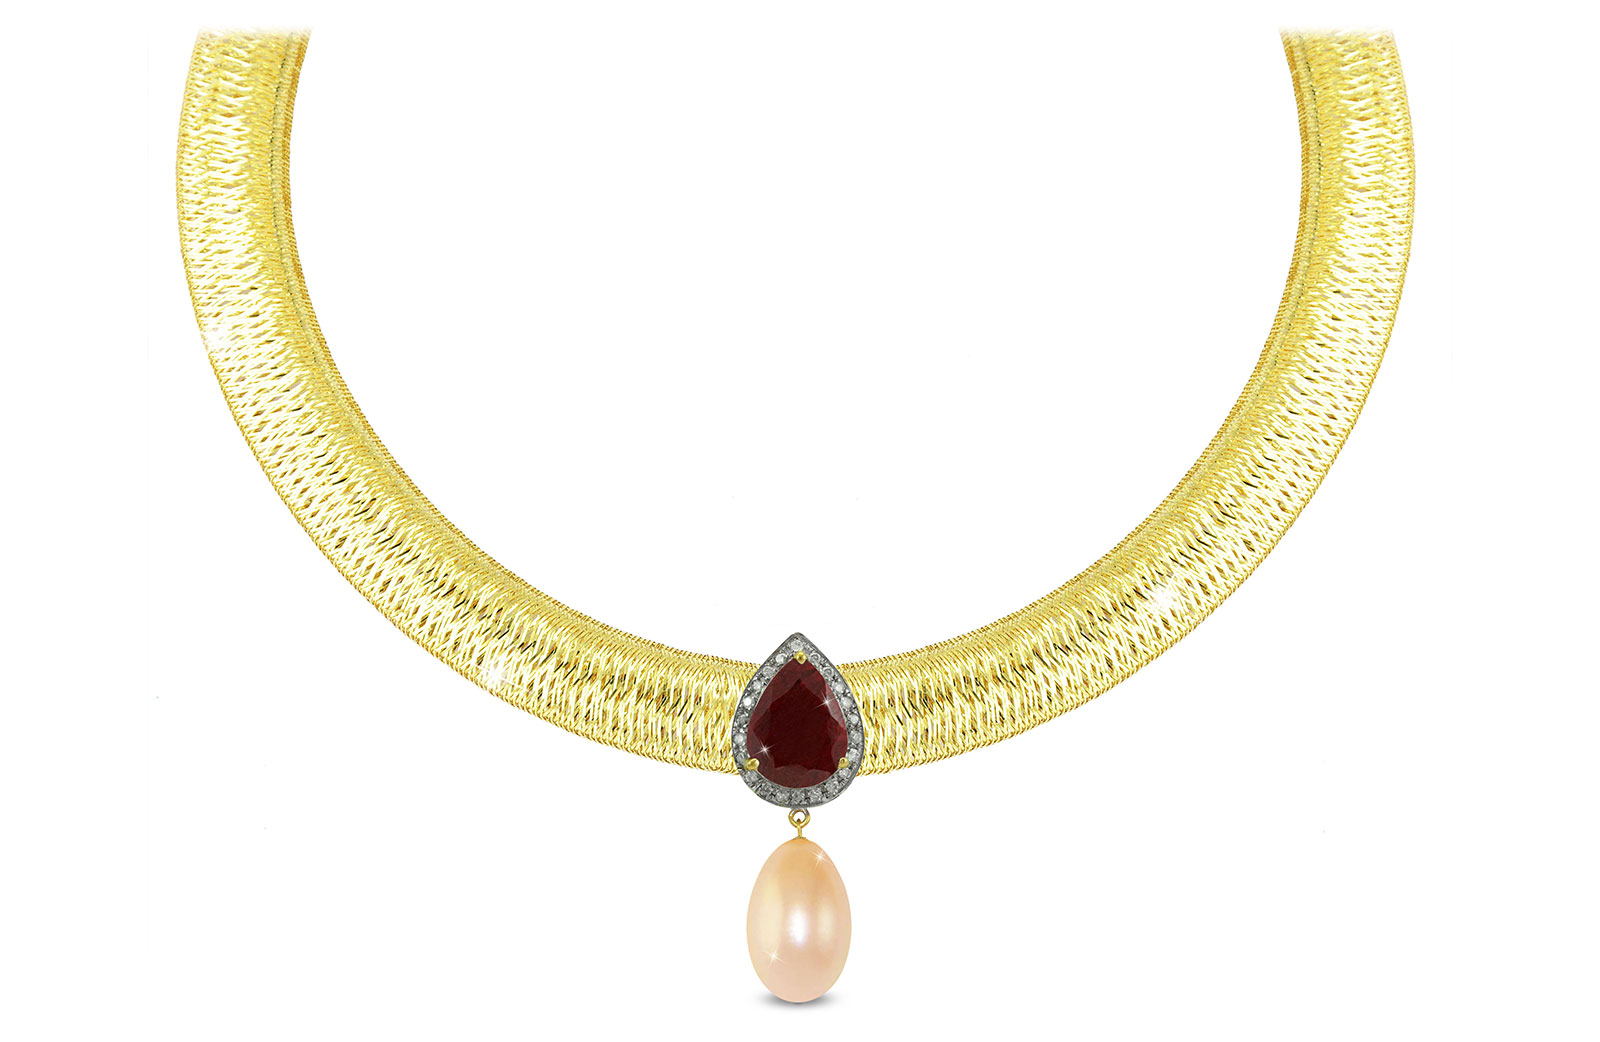 Vera Perla 18K Gold 0.12ct Diamonds, Ruby and 13mm Pink Pearl Necklace